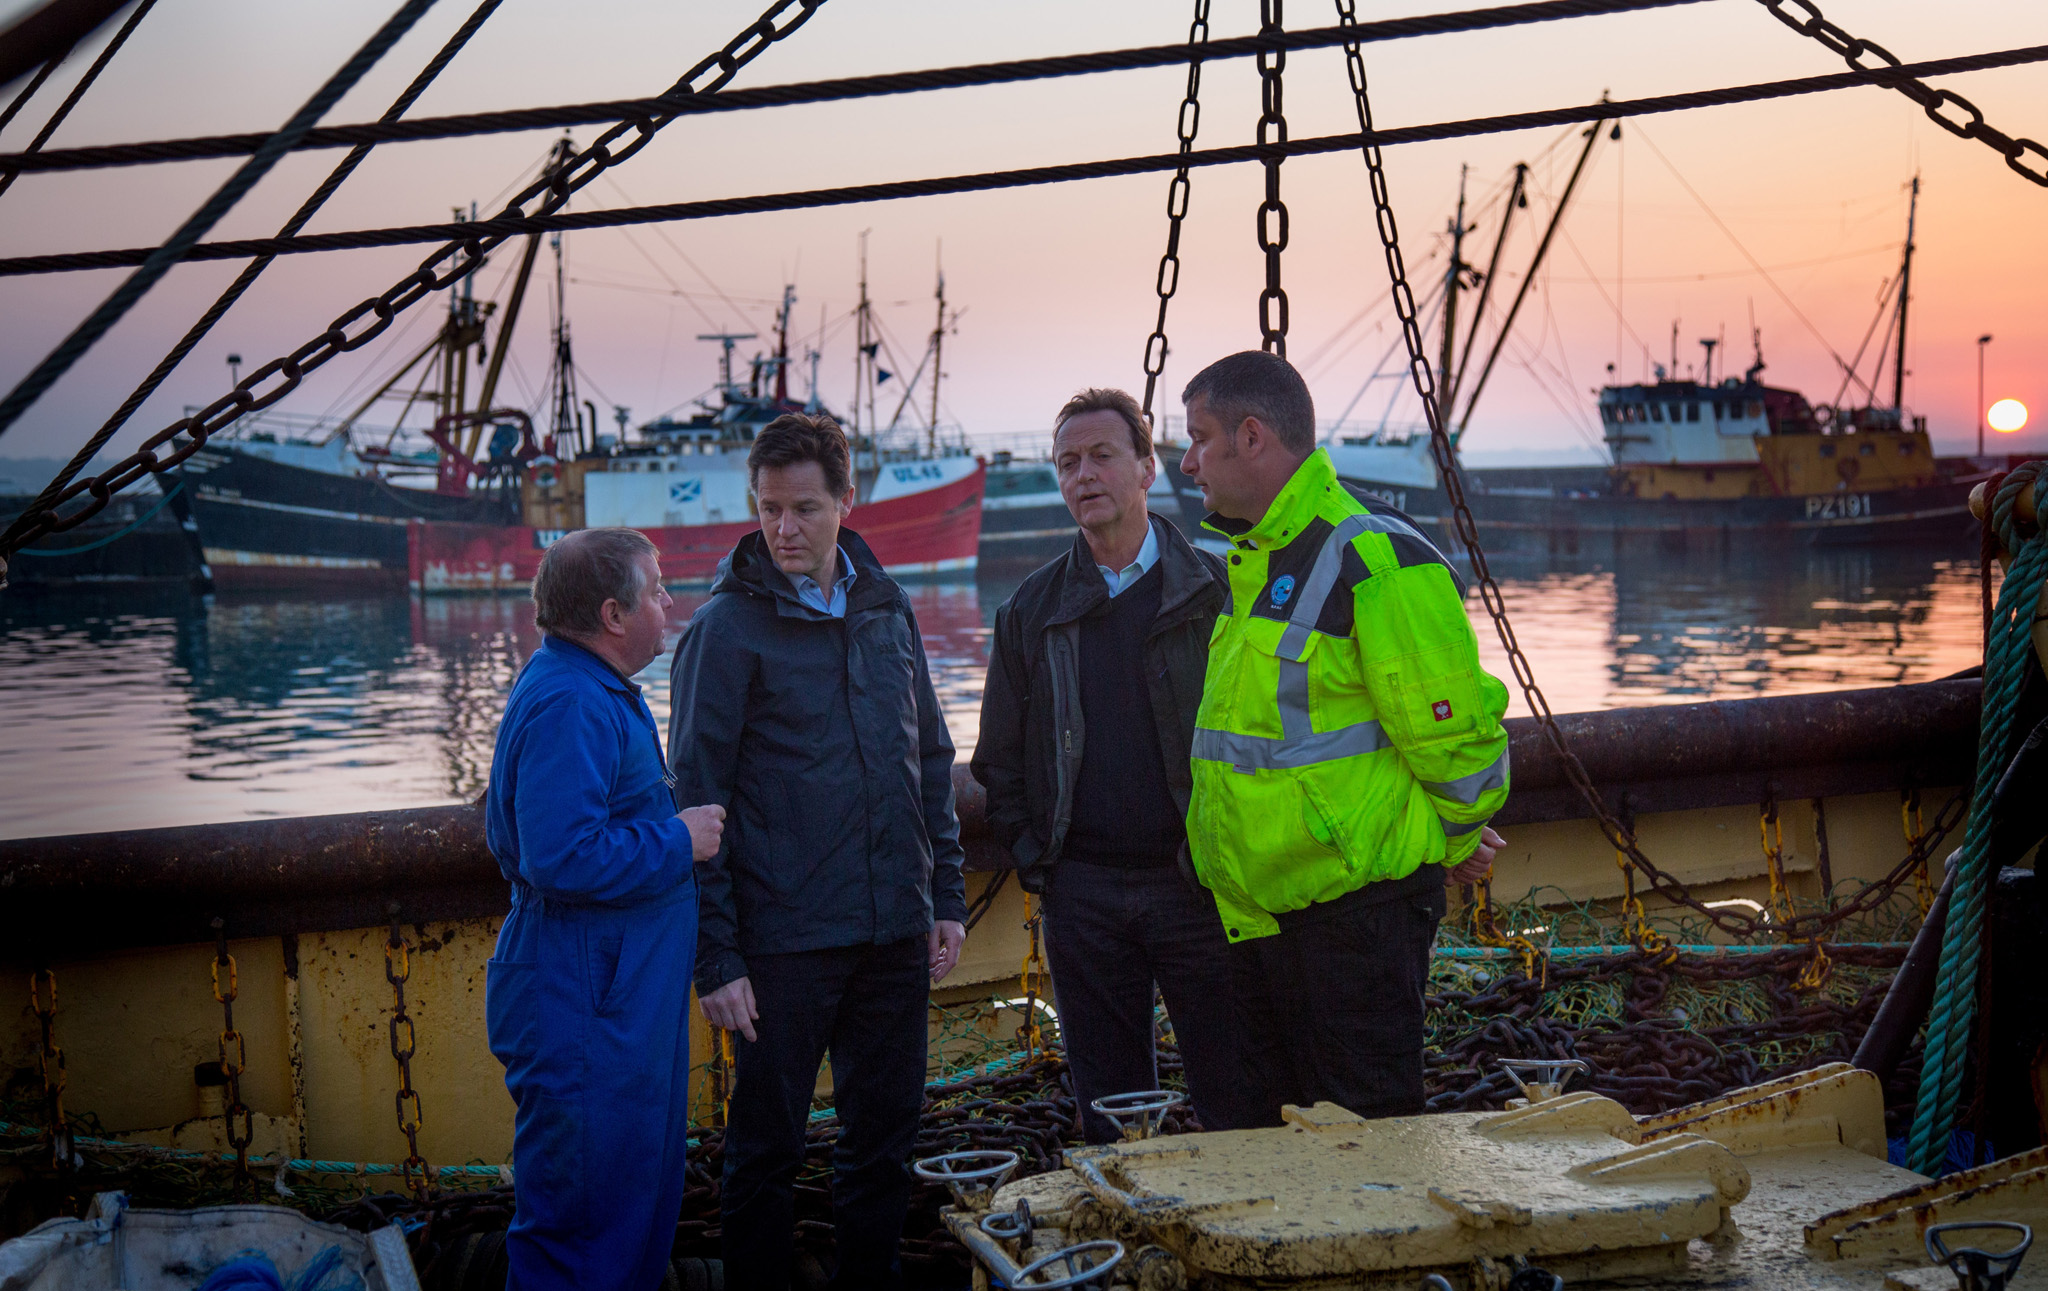 Nick Clegg Campaigns in Cornwall...NEWLYN, ENGLAND - APRIL 21:  Deputy Prime Minister Nick Clegg chats on board a fishing vessel with market manager Lionel Washer (L), Andrew George, MP for St Ives (2R) and Harbour Master Rob Parsons (R) at Newlyn Harbour on April 21, 2015 in Cornwall, England. The Liberal Democrat party leader visited the harbour to campaign alongside Liberal Democrat candidate and MP of 18 years Andrew George and meet members of the fishing community. Britain goes to the polls in a general election on May 7.  (Photo by Matt Cardy/Getty Images)